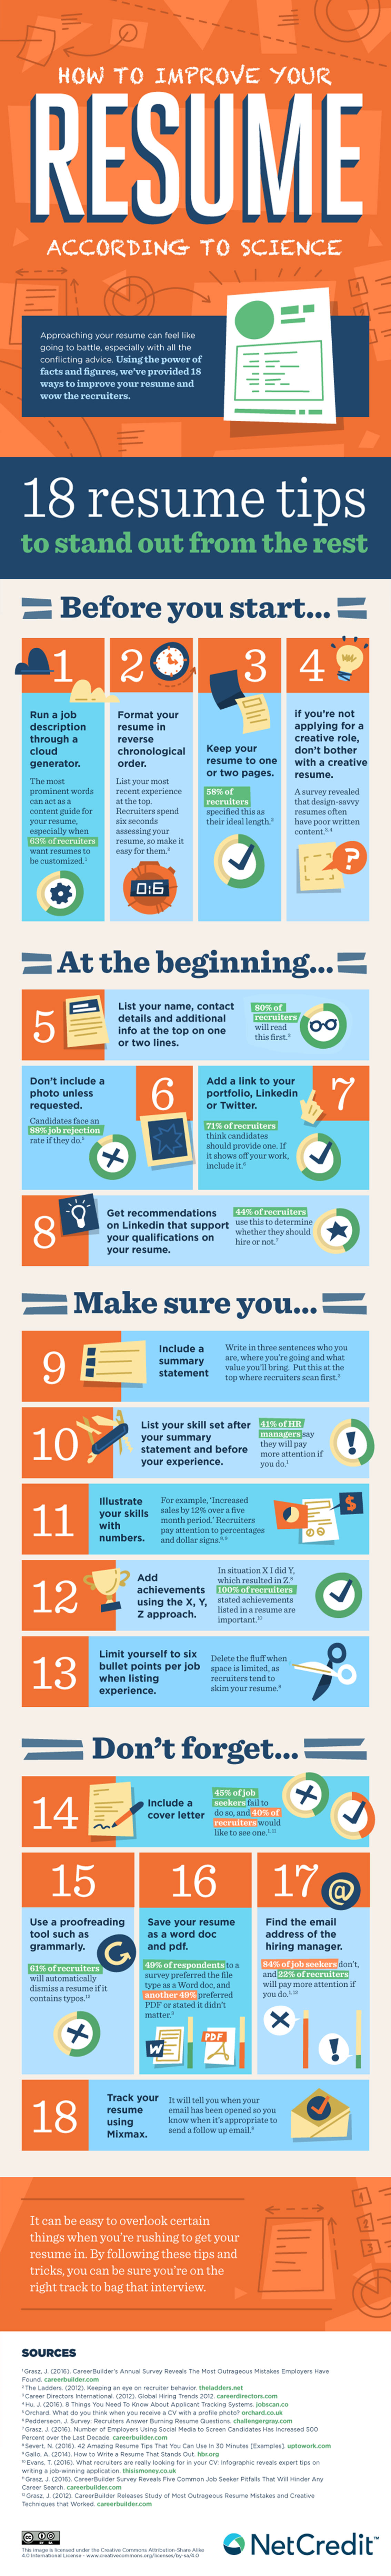 Tips on Writing a Professional Resume Infographic